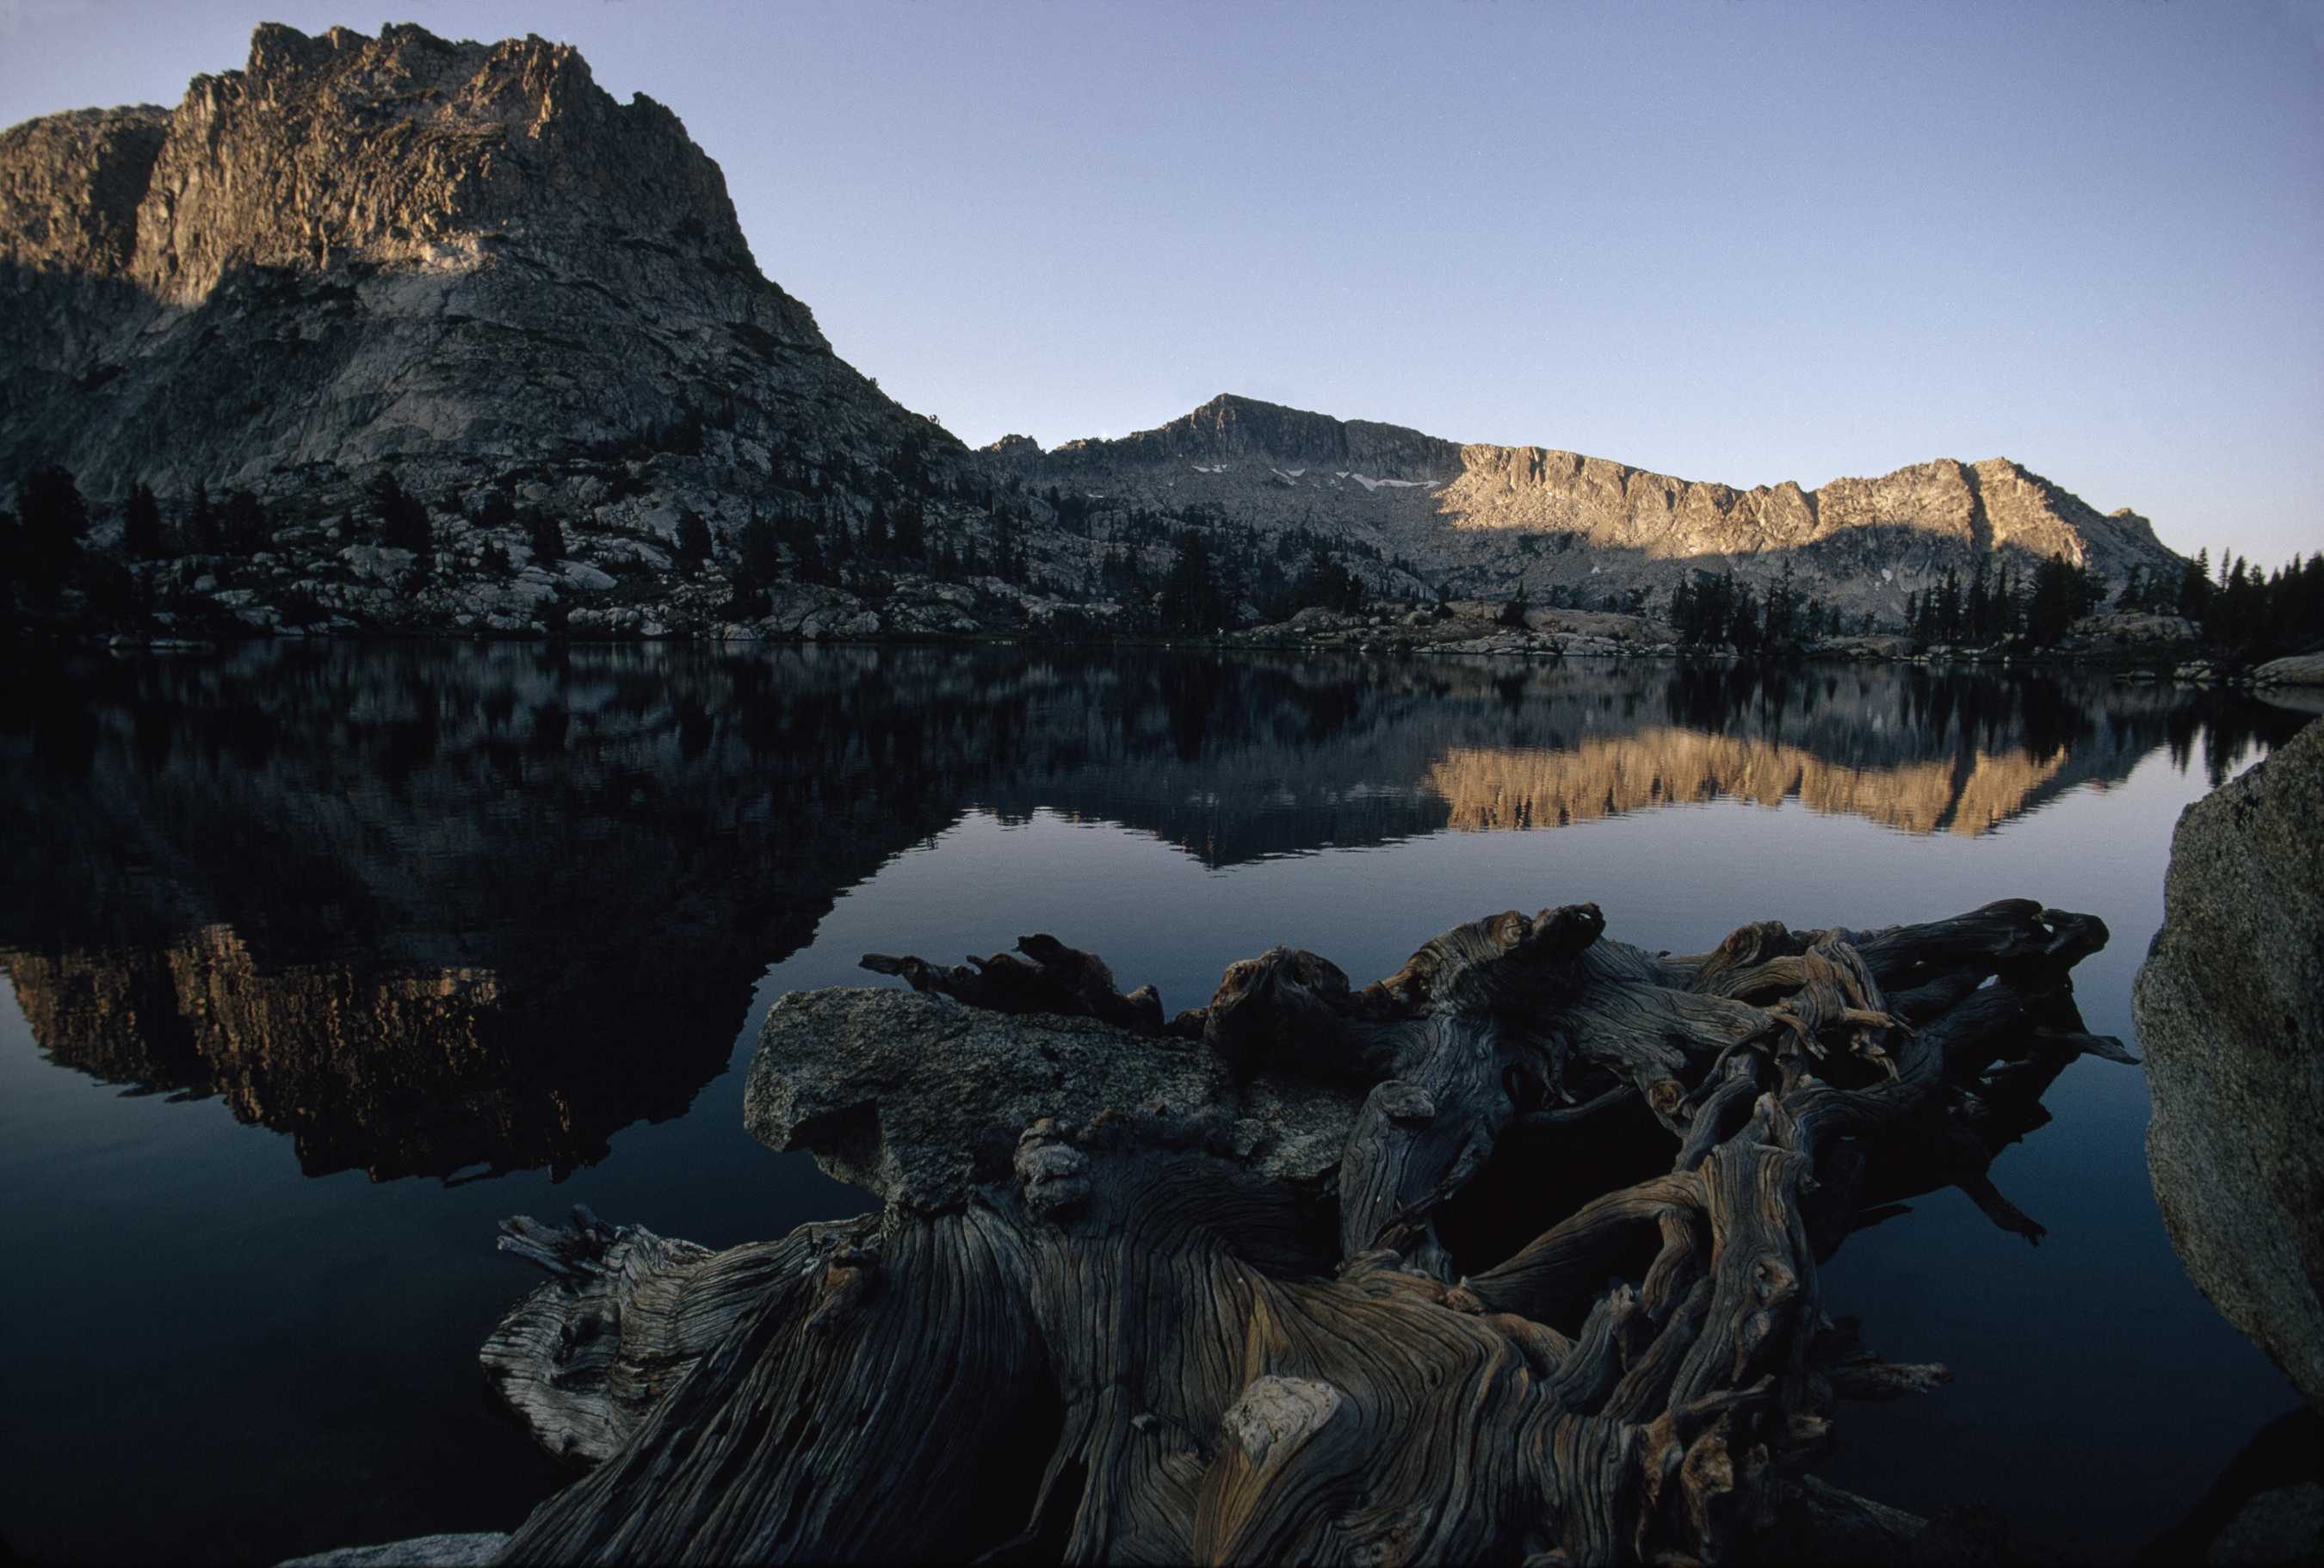 Mountains Wood California lakes HD Wallpaper